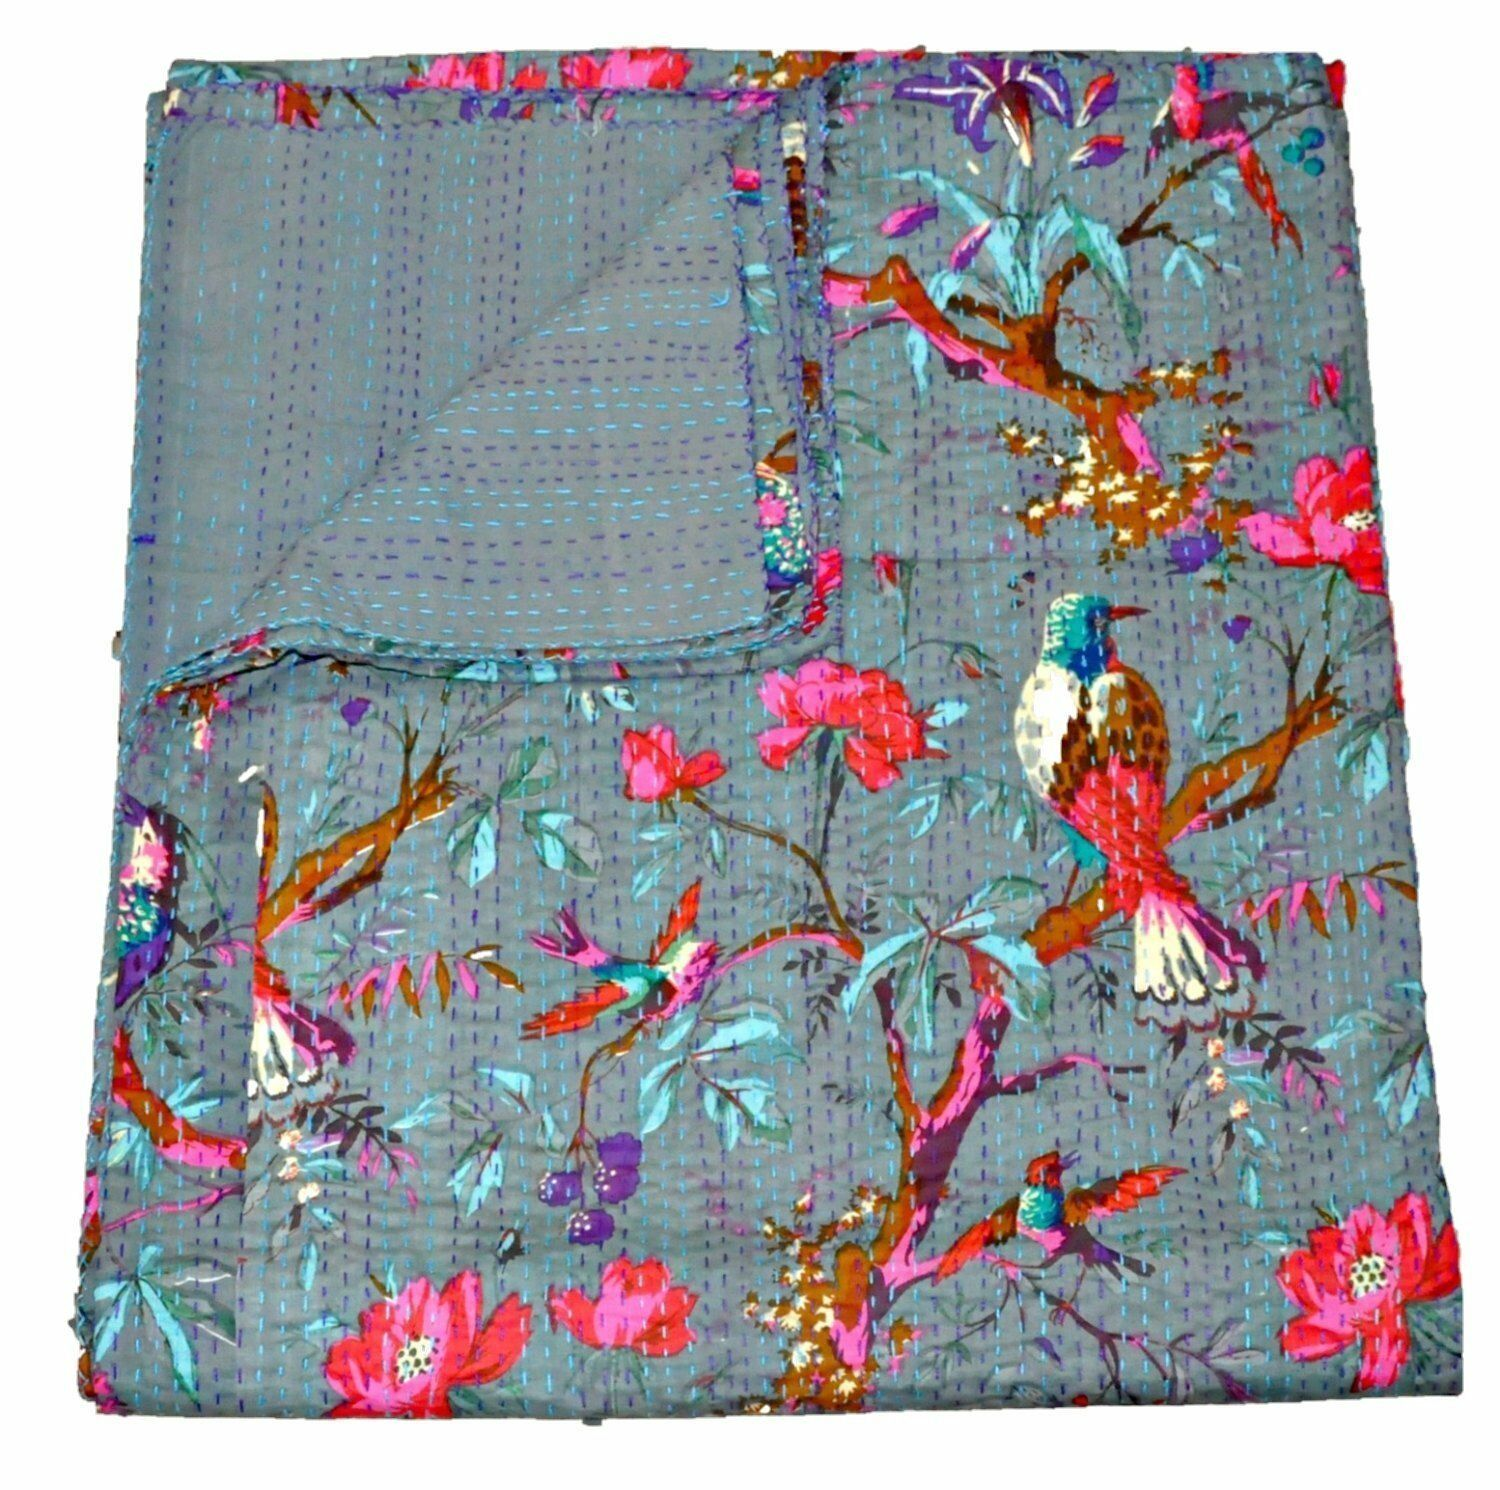 Cotton Bedcover Bedspread Coverlet Kantha Quilt Indian Vintage Reversible Throw